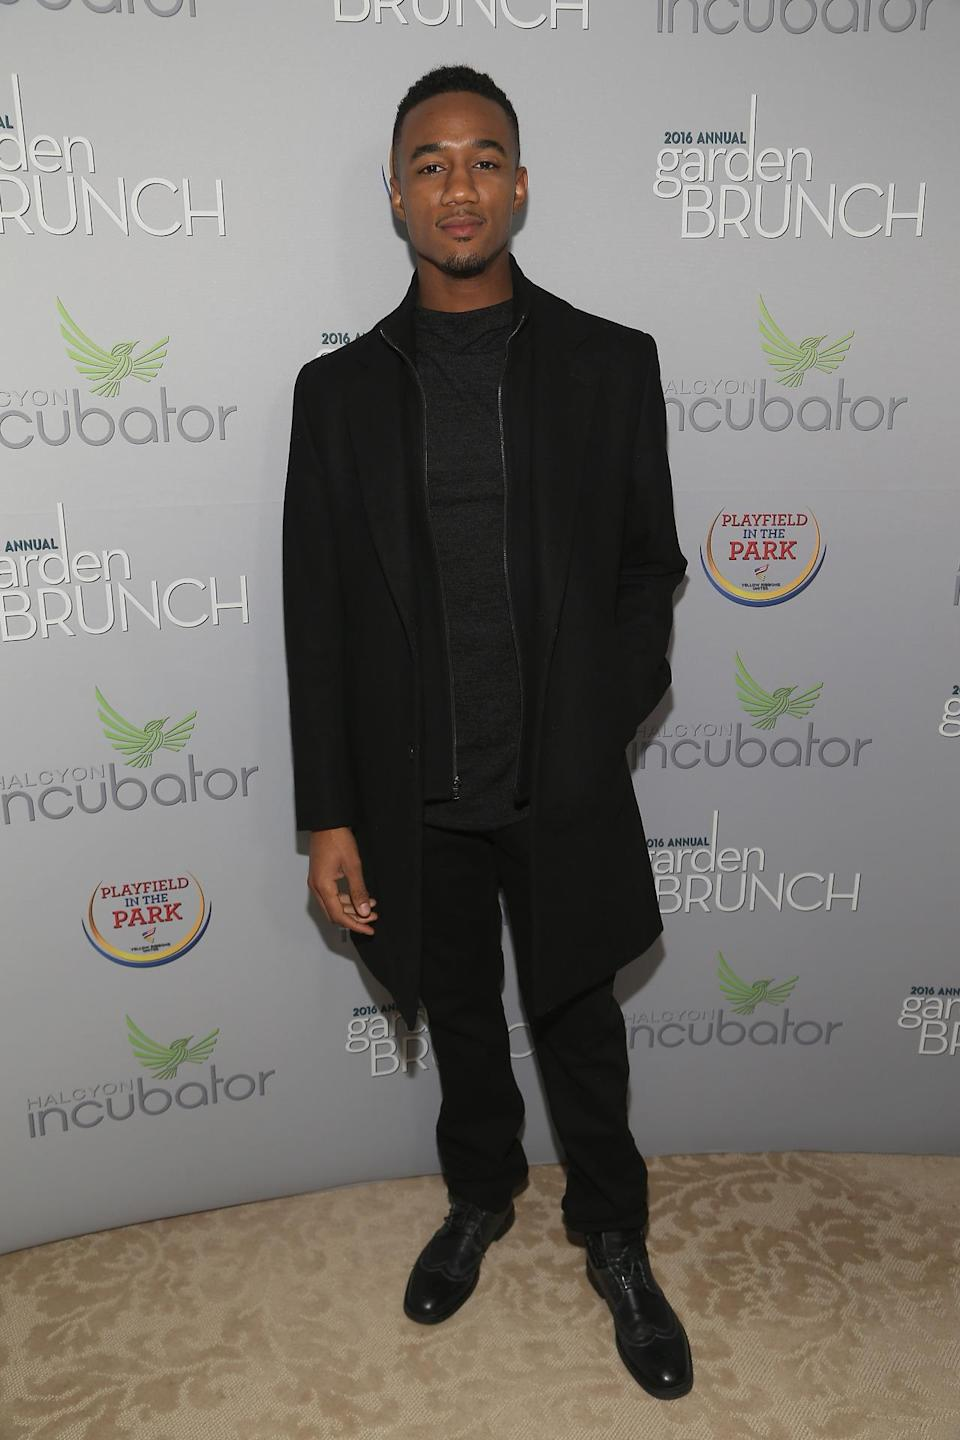 <p>Actor Jessie Usher attends the Garden Brunch prior to the 102nd White House Correspondents' Dinner, April 30. <i>(Photo: Paul Morigi/WireImage)</i></p>